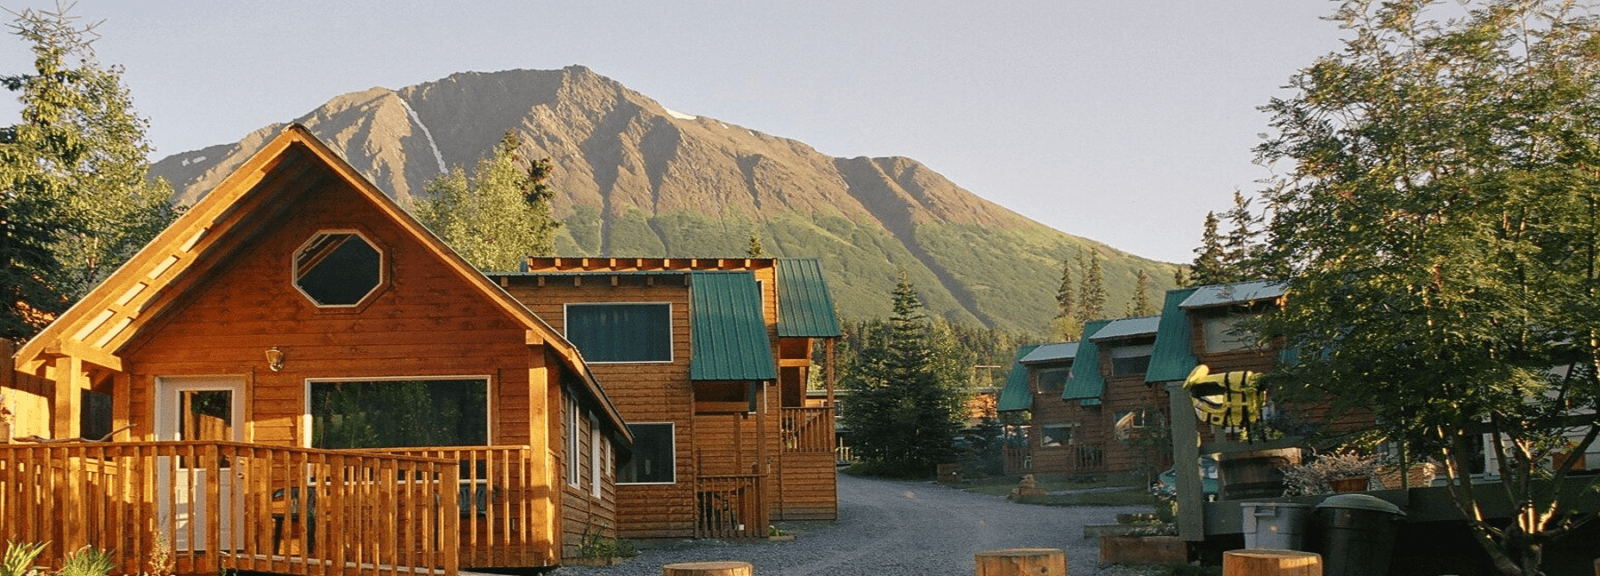 Alaska kenai river fishing lodge